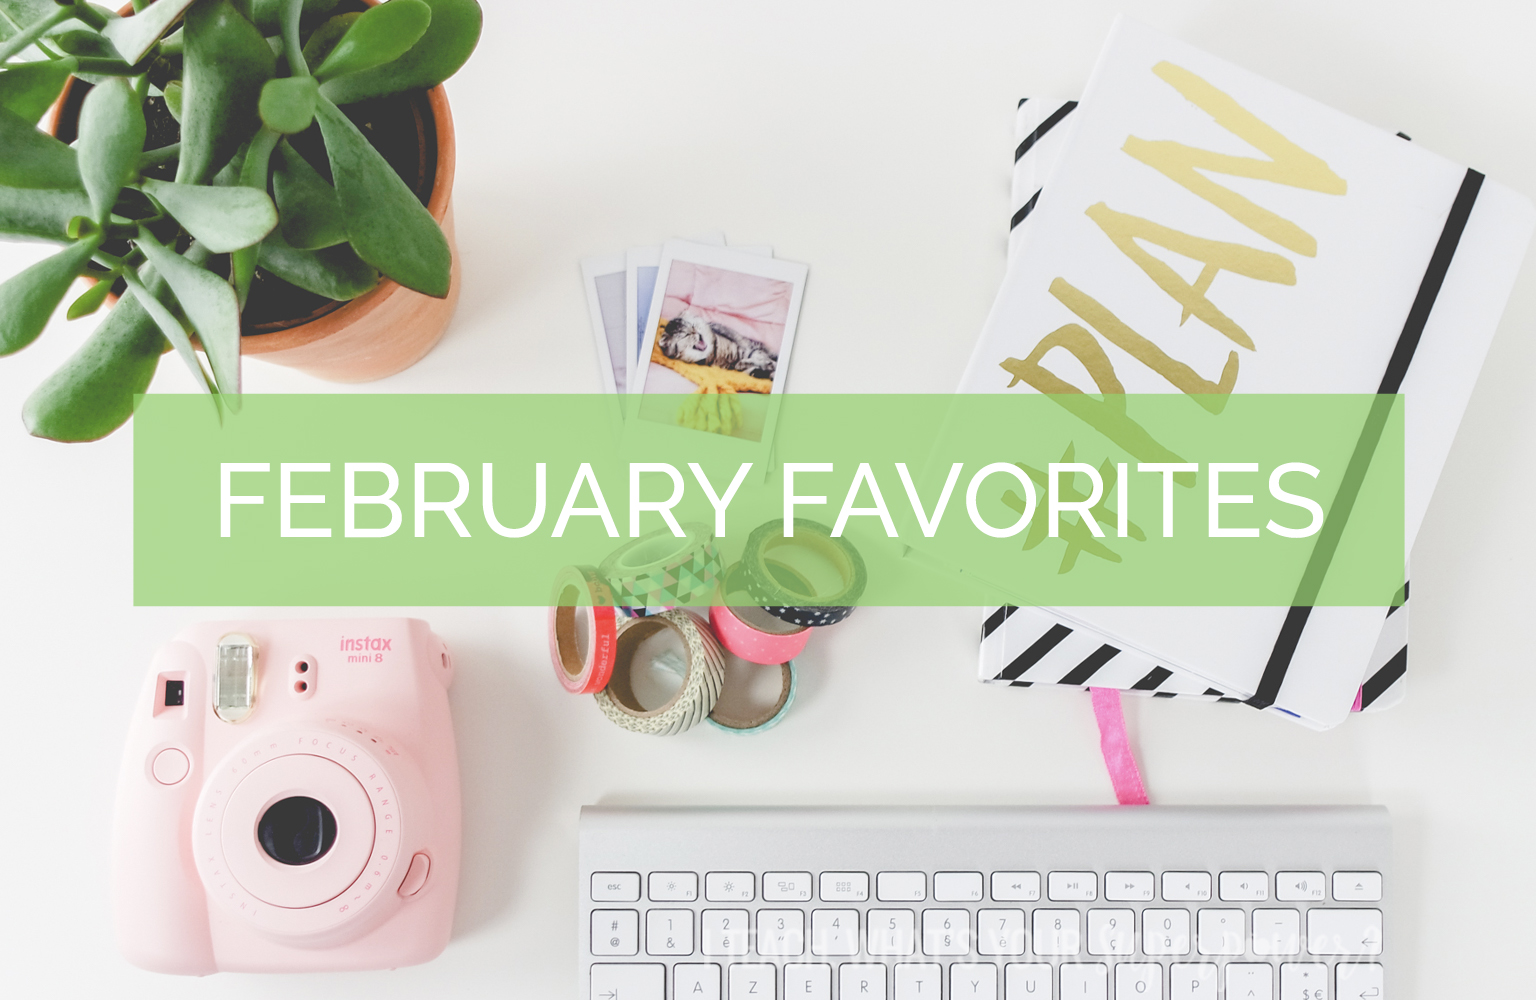 It's time for February favorites! Read about my InstaAmazing new kitchen tool, my latest bad habit, and more!